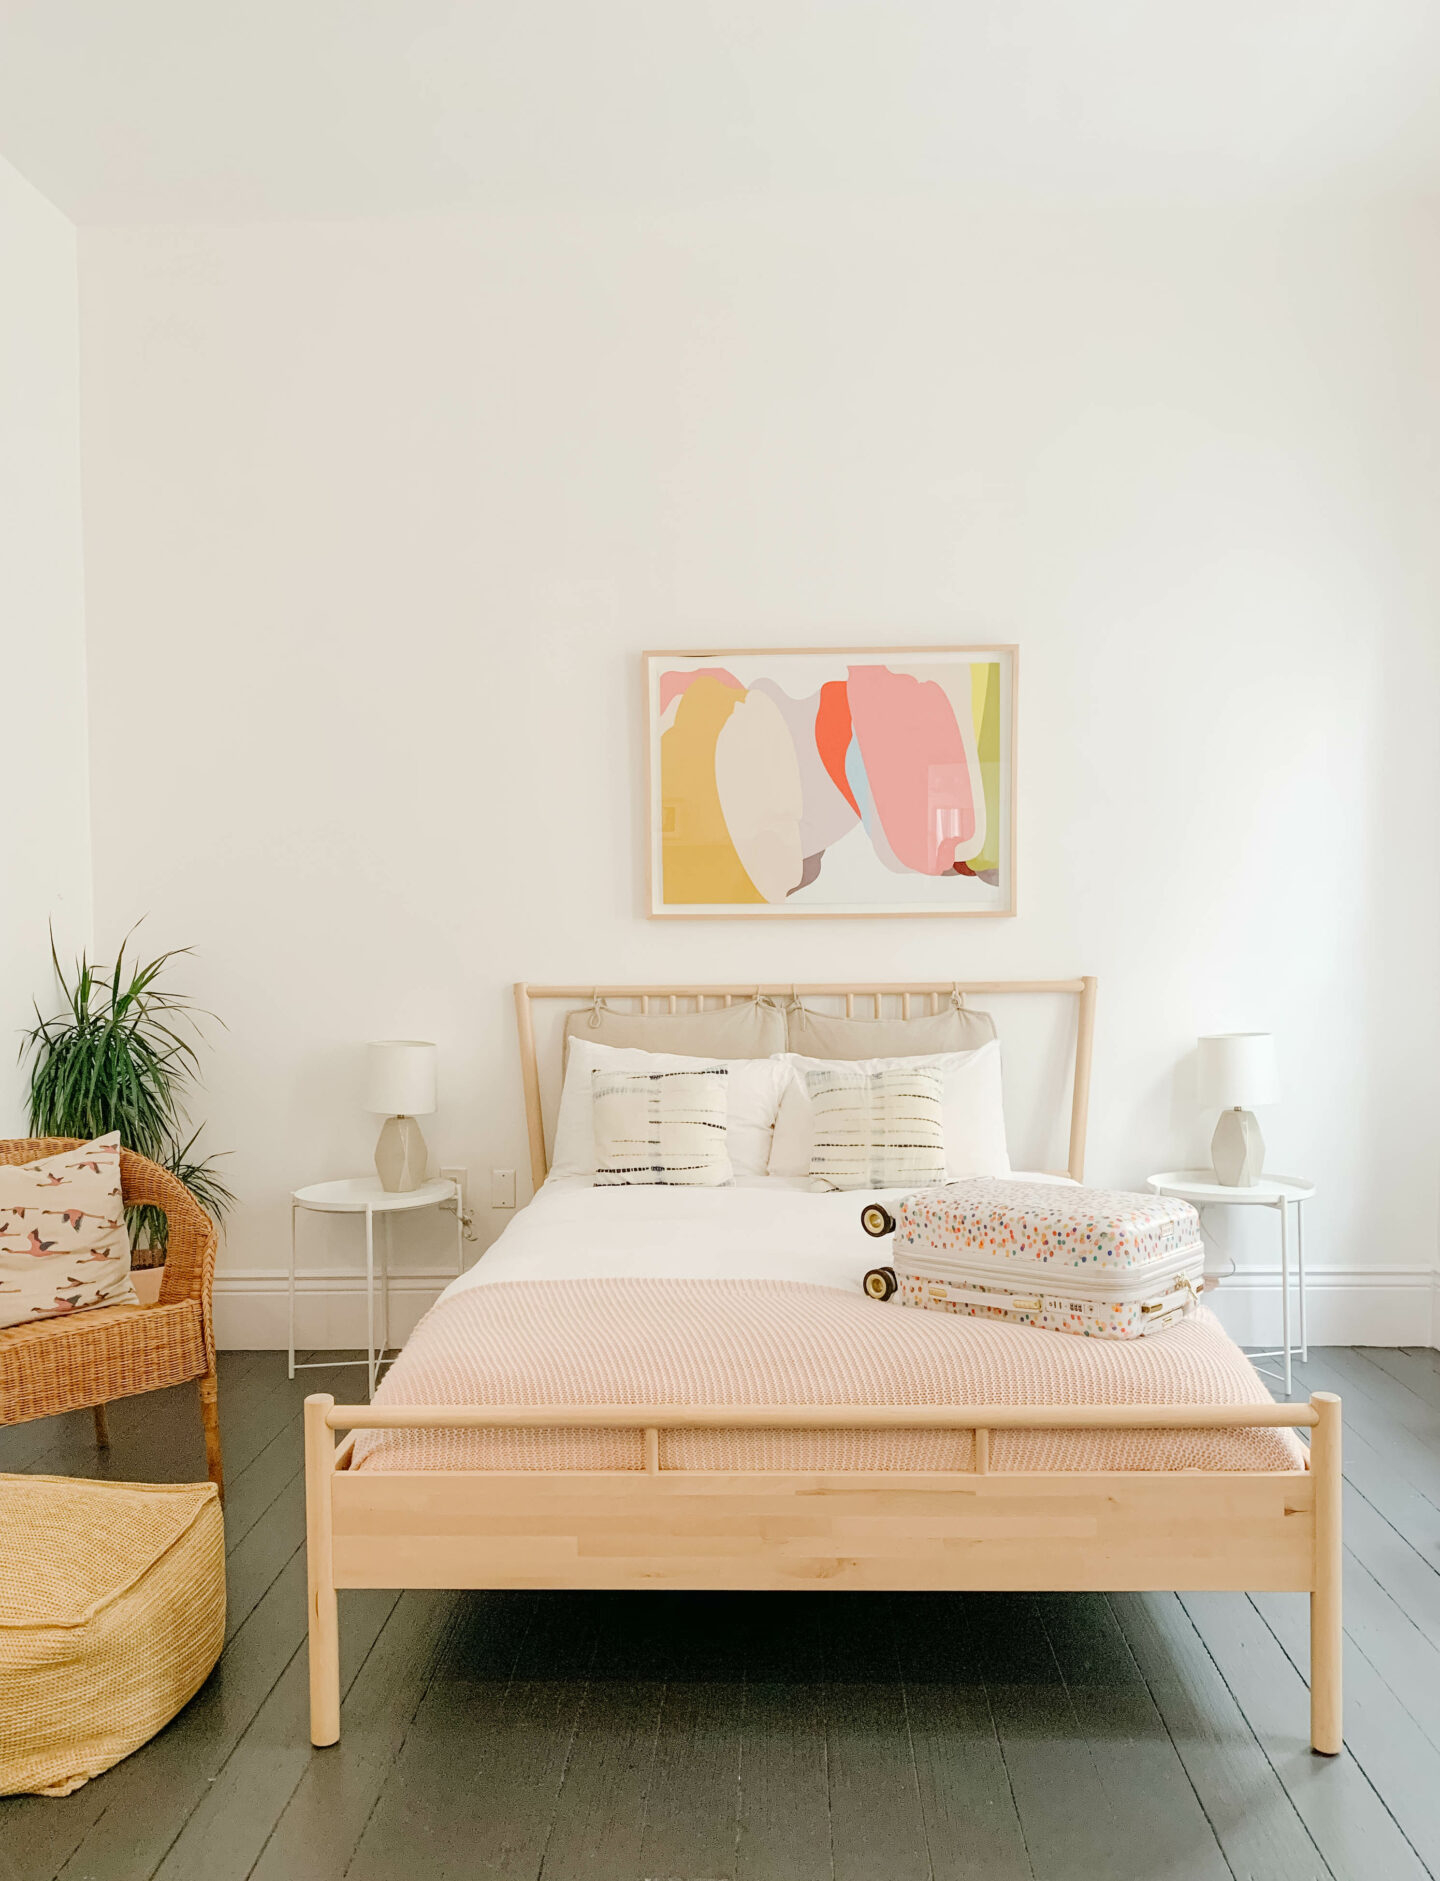 Where to Stay visiting Los Angeles